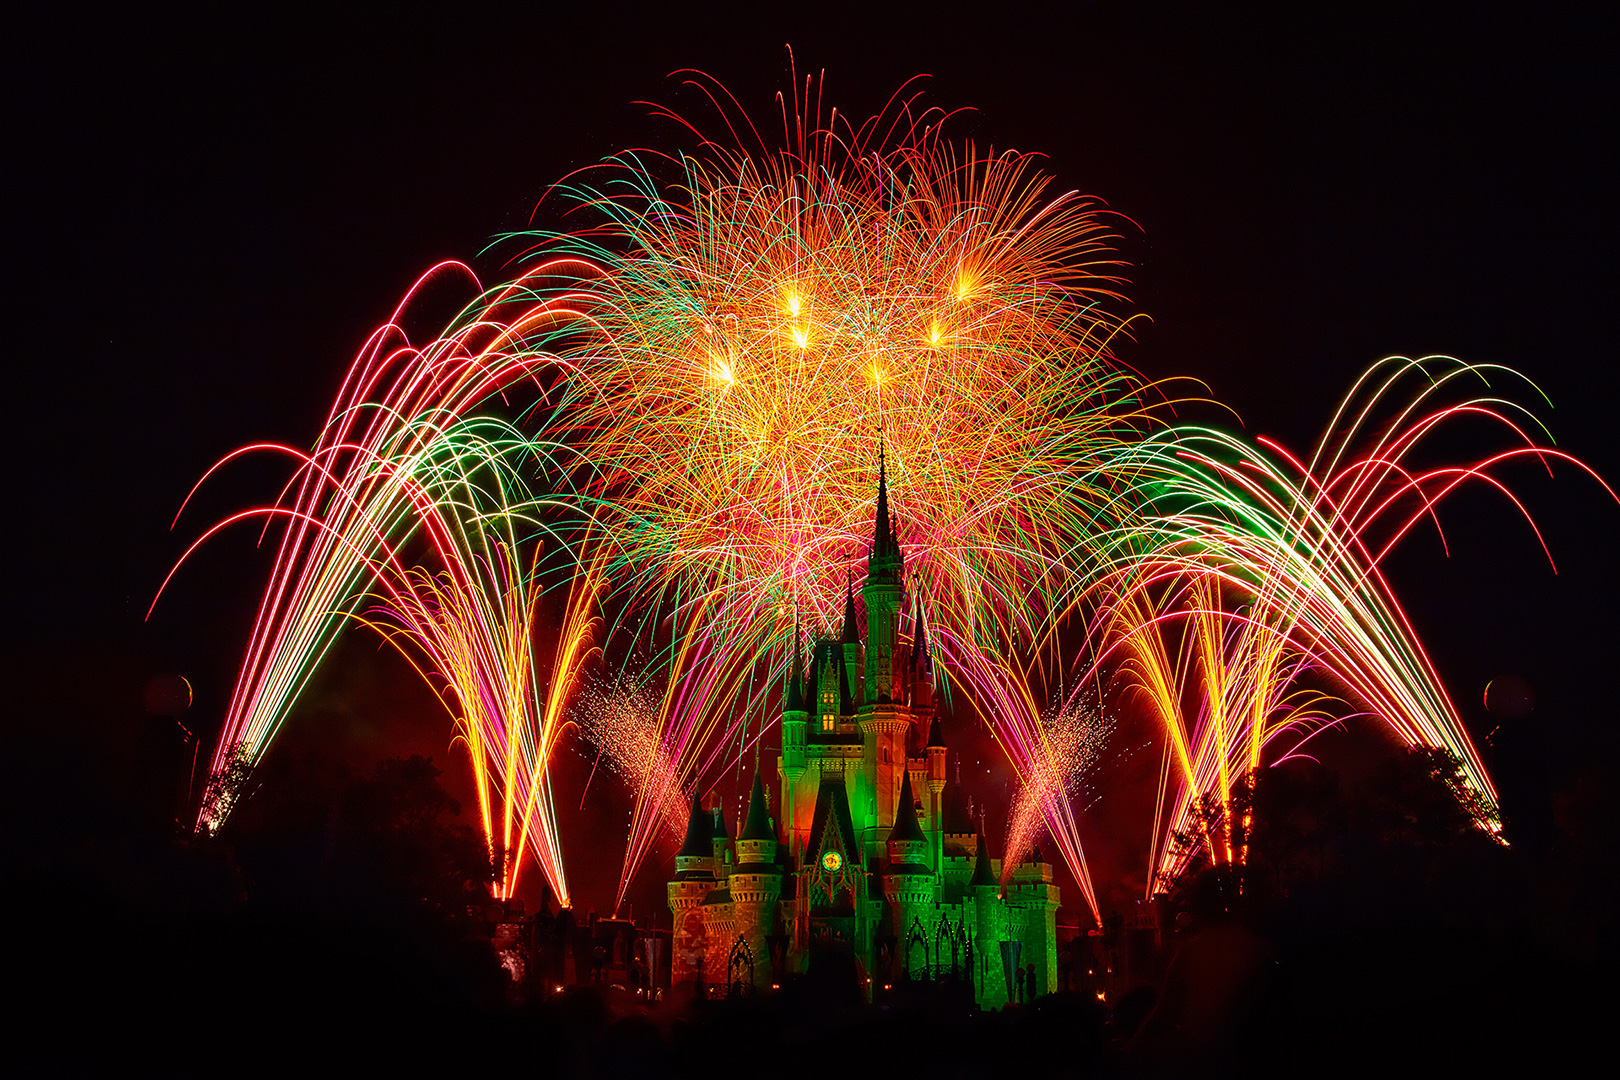 Disney Photography, Disney World Photography, Disneyland Photography, Disney Photos, Disney Pictures, Walt Disney World, The Magic Kingdom, Walt Disney, Mickey Mouse, Orlando, Florida, Theme Park, Cindarella Castle, Fireworks, Hallowishes, Show